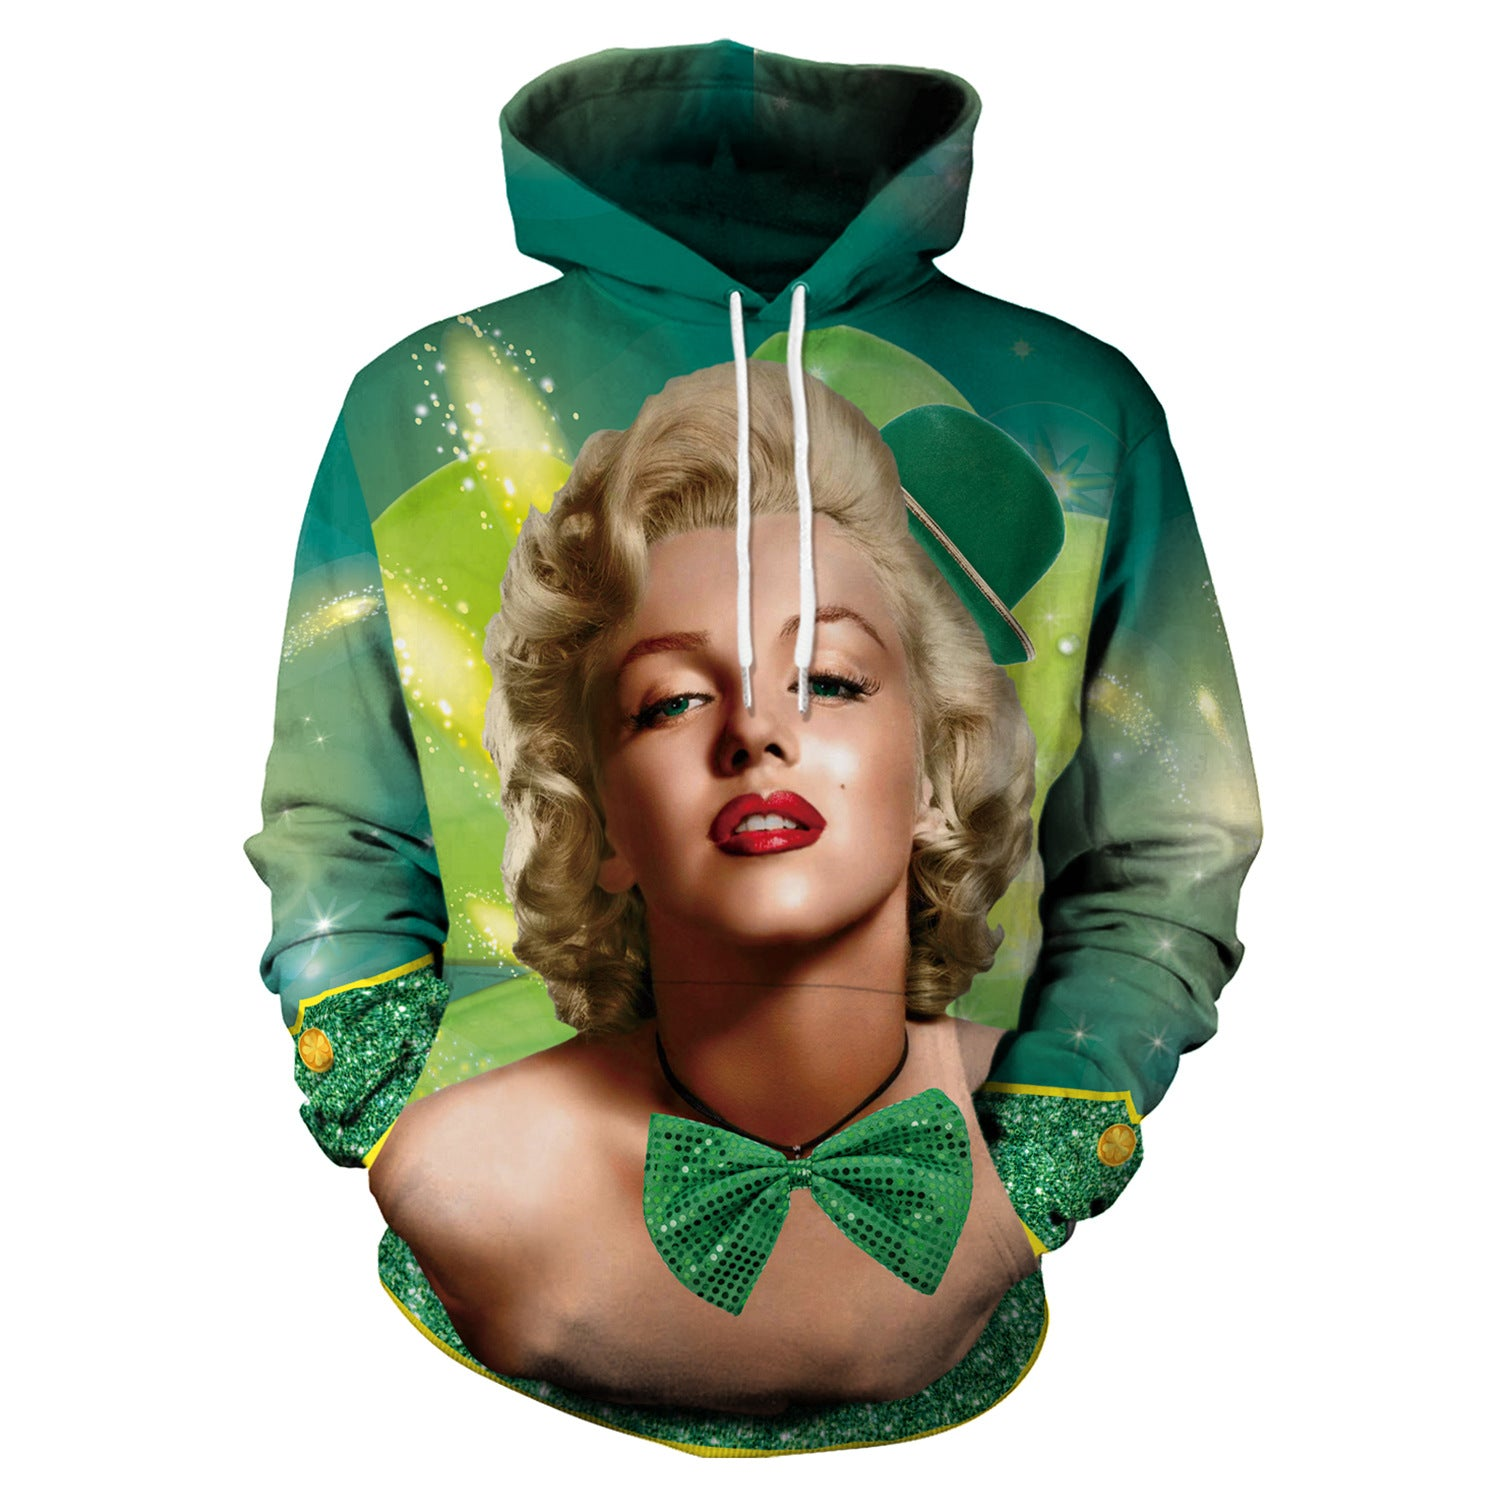 3D St. Patrick's Day Four-leaf Clovers Print Shamrock Shirt Hoodie Sweatshirt Jacket